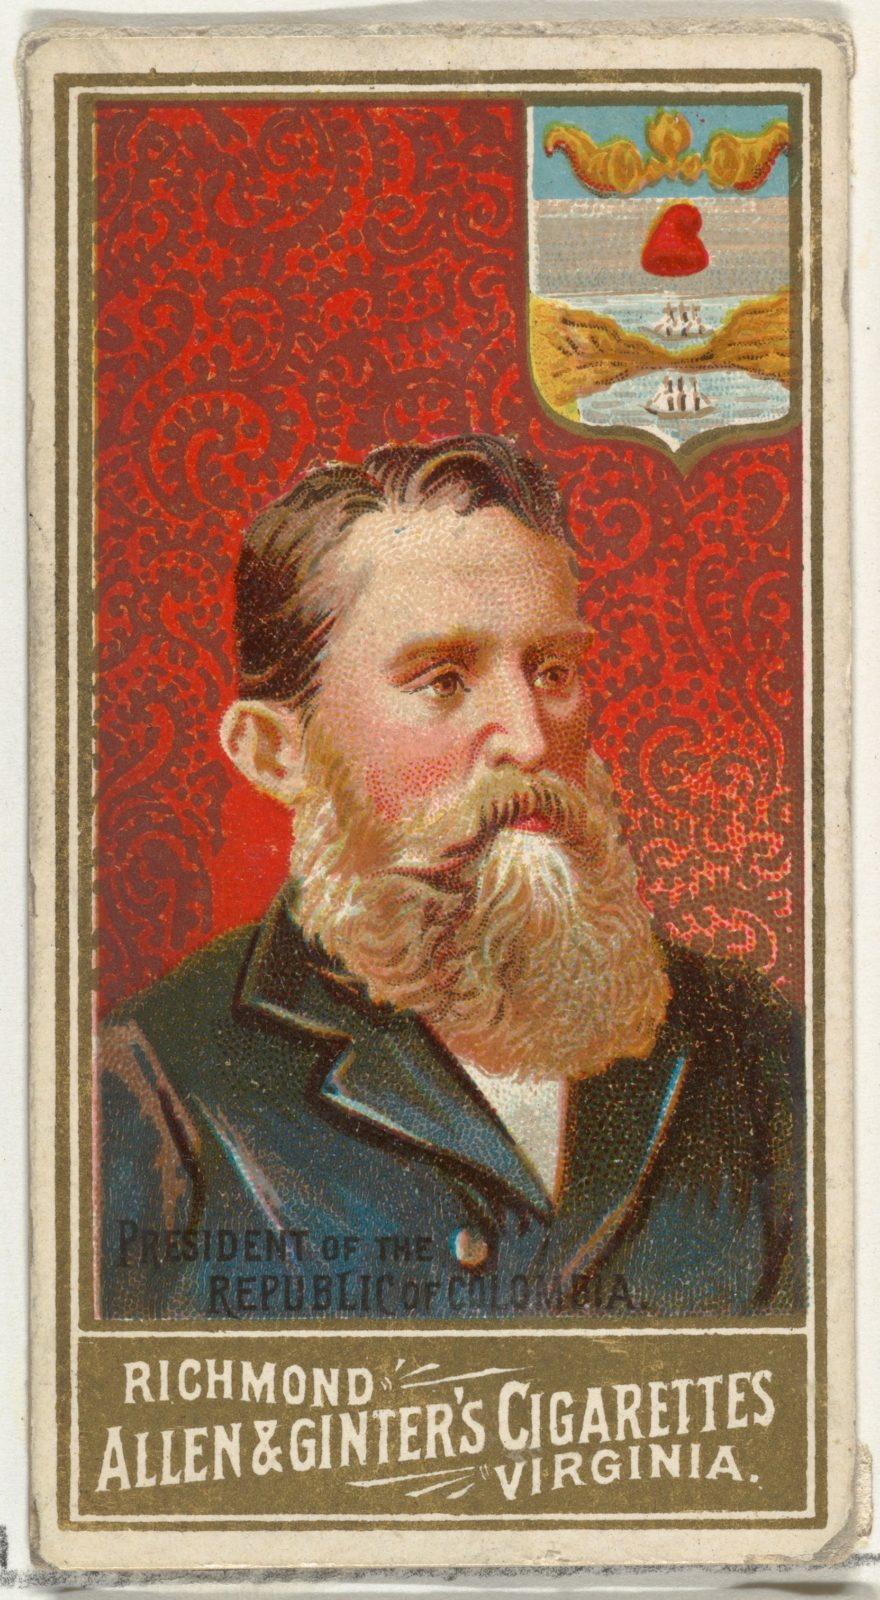 President of the Republic of Colombia, from World's Sovereigns series (N34) for Allen & Ginter Cigarettes